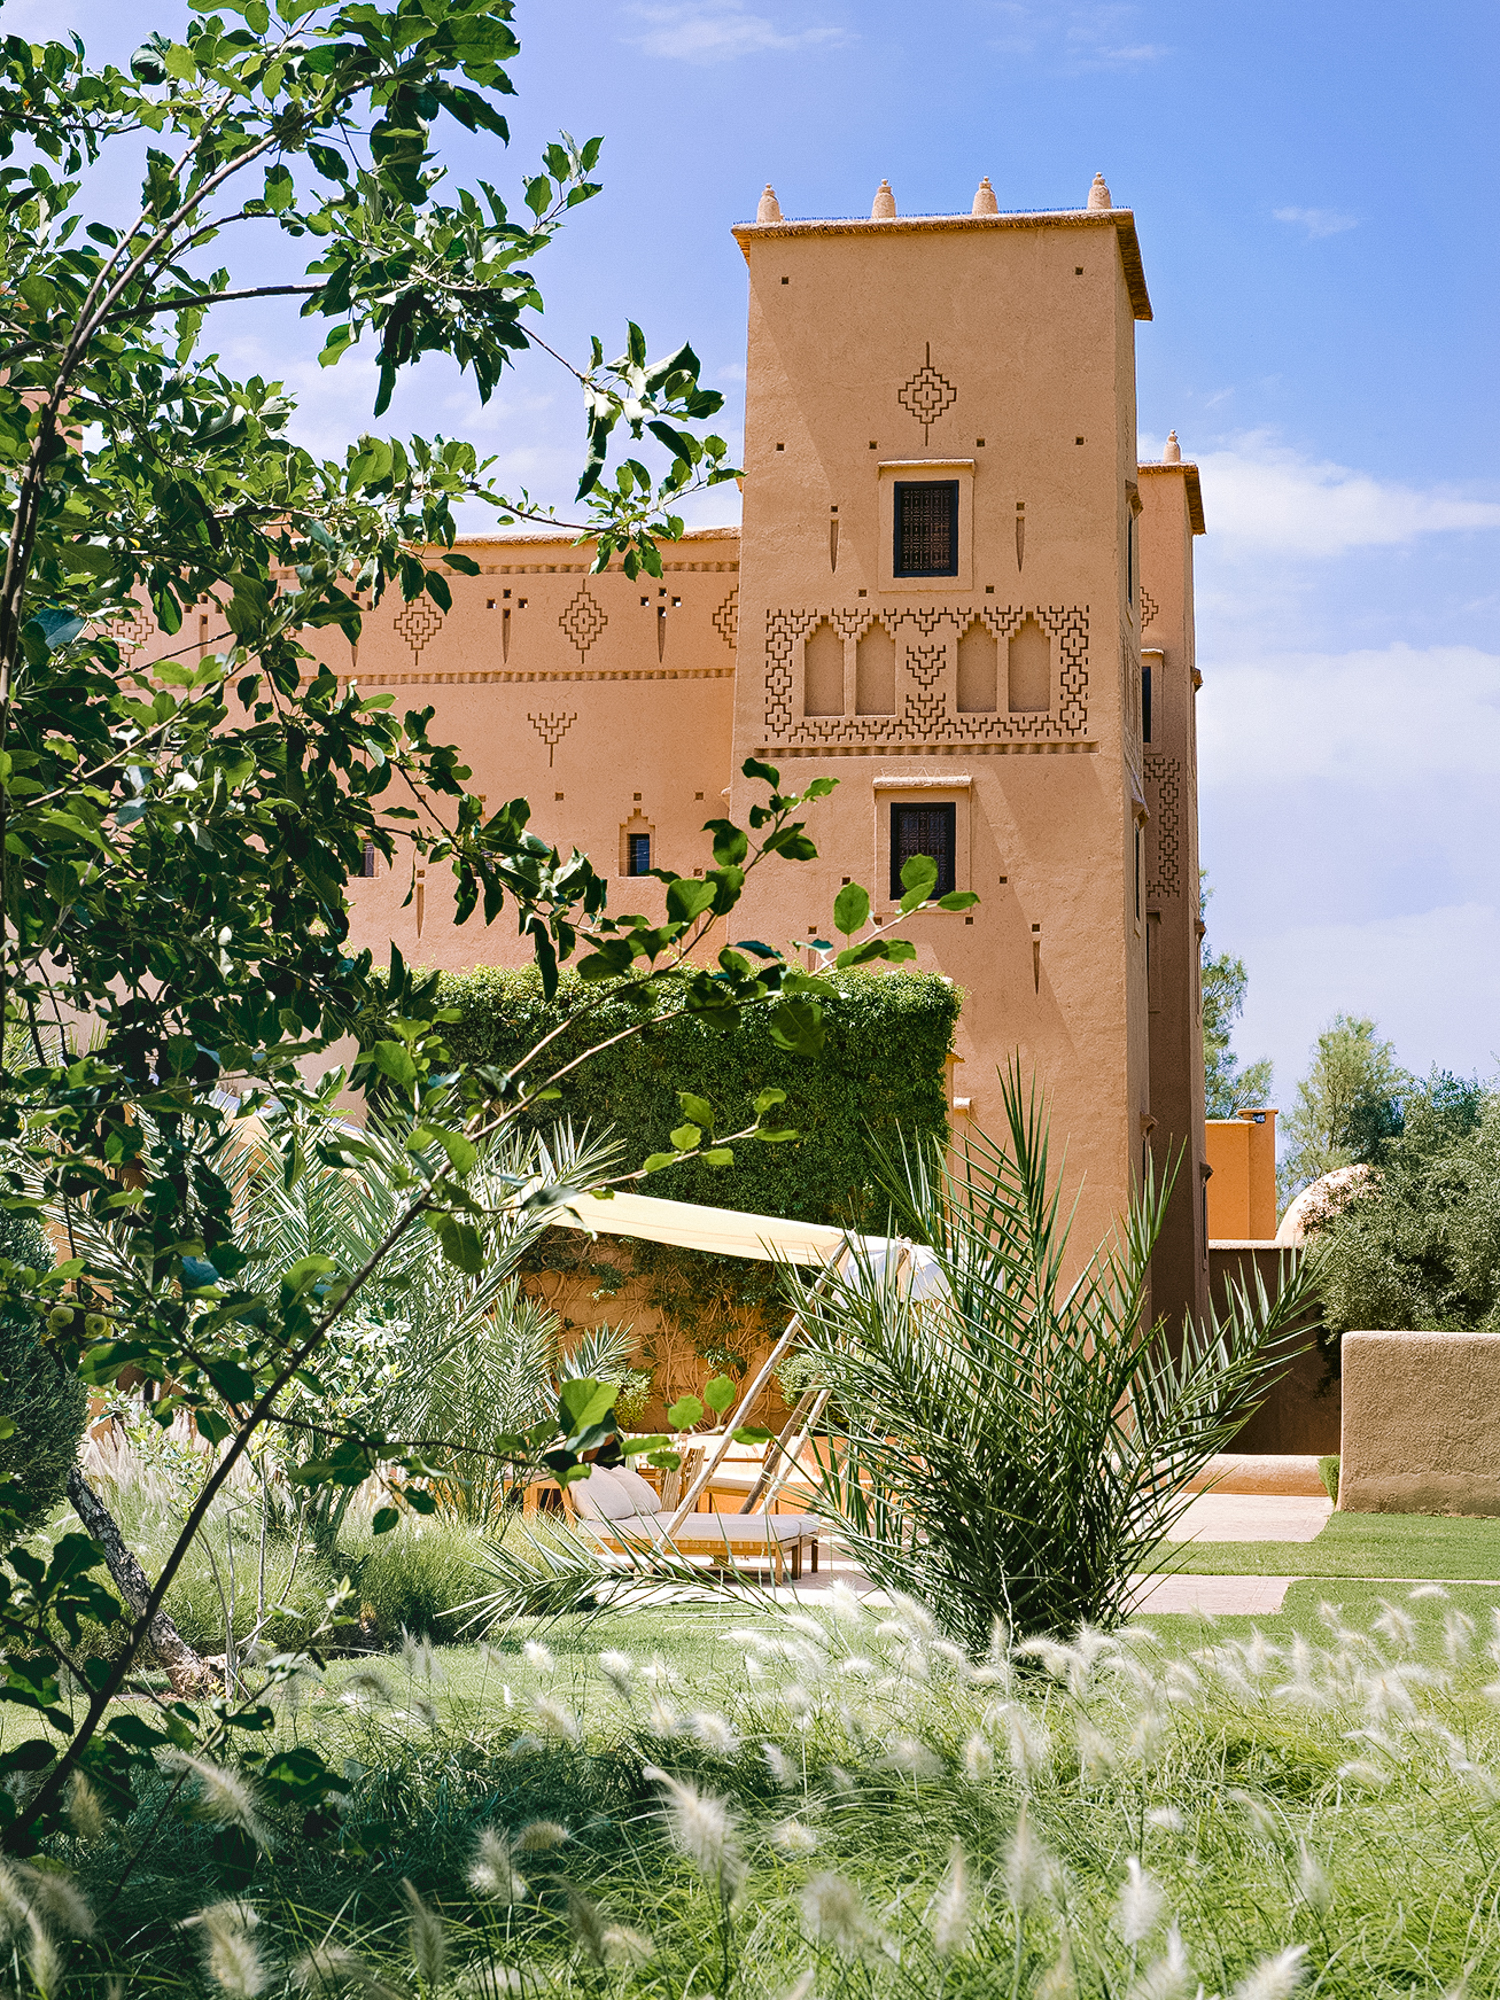 Skoura Valley - Tucked in the Ouarzazate region of southern Morocco is the paradisiacal oasis of Skoura. The valley's adobe villages are fringed with palm groves, orchards and wheat fields. Hike through the oasis with local guides up to stunning viewpoints and experience the strikingly different local culture. Visit the local market, enjoy picnic lunches and take a tour of the kasbah's that dot Skoura.